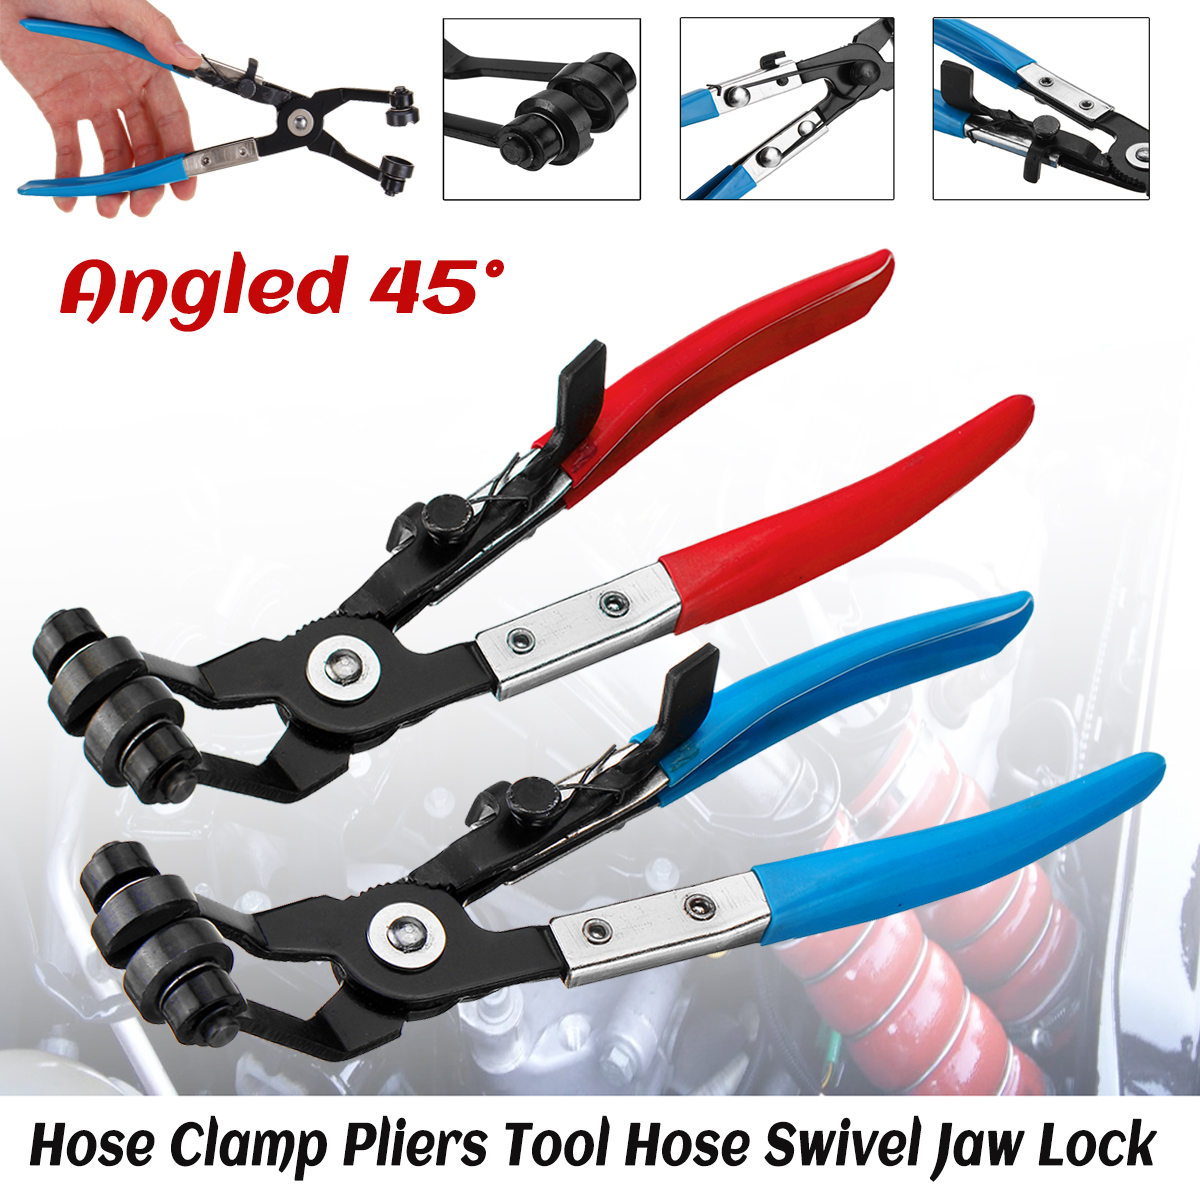 Pro Angled Swivel Jaw Locking Car Pipe Hose Clamp Pliers Fuel Coolant Clip UK